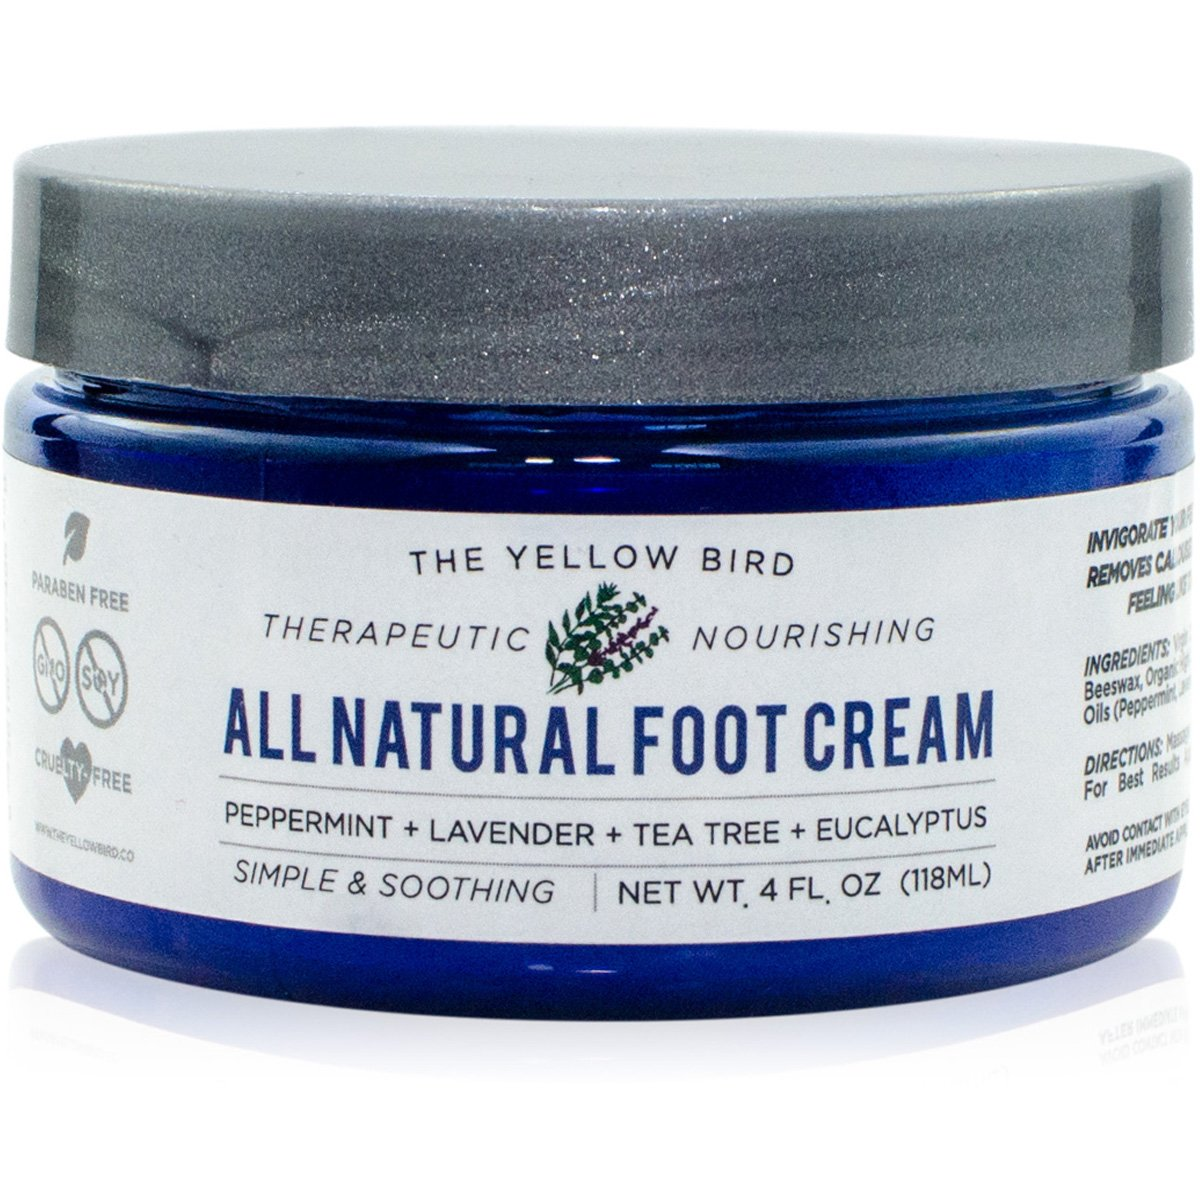 All Natural Antifungal Foot Cream. Moisturizing Organic Relief for Dry Cracked Heels, Callused Feet, Athletes Foot. Best Therapeutic Grade Essential Oils: Peppermint, Lavender, Eucalyptus, Tea Tree. by The Yellow Bird (Image #1)